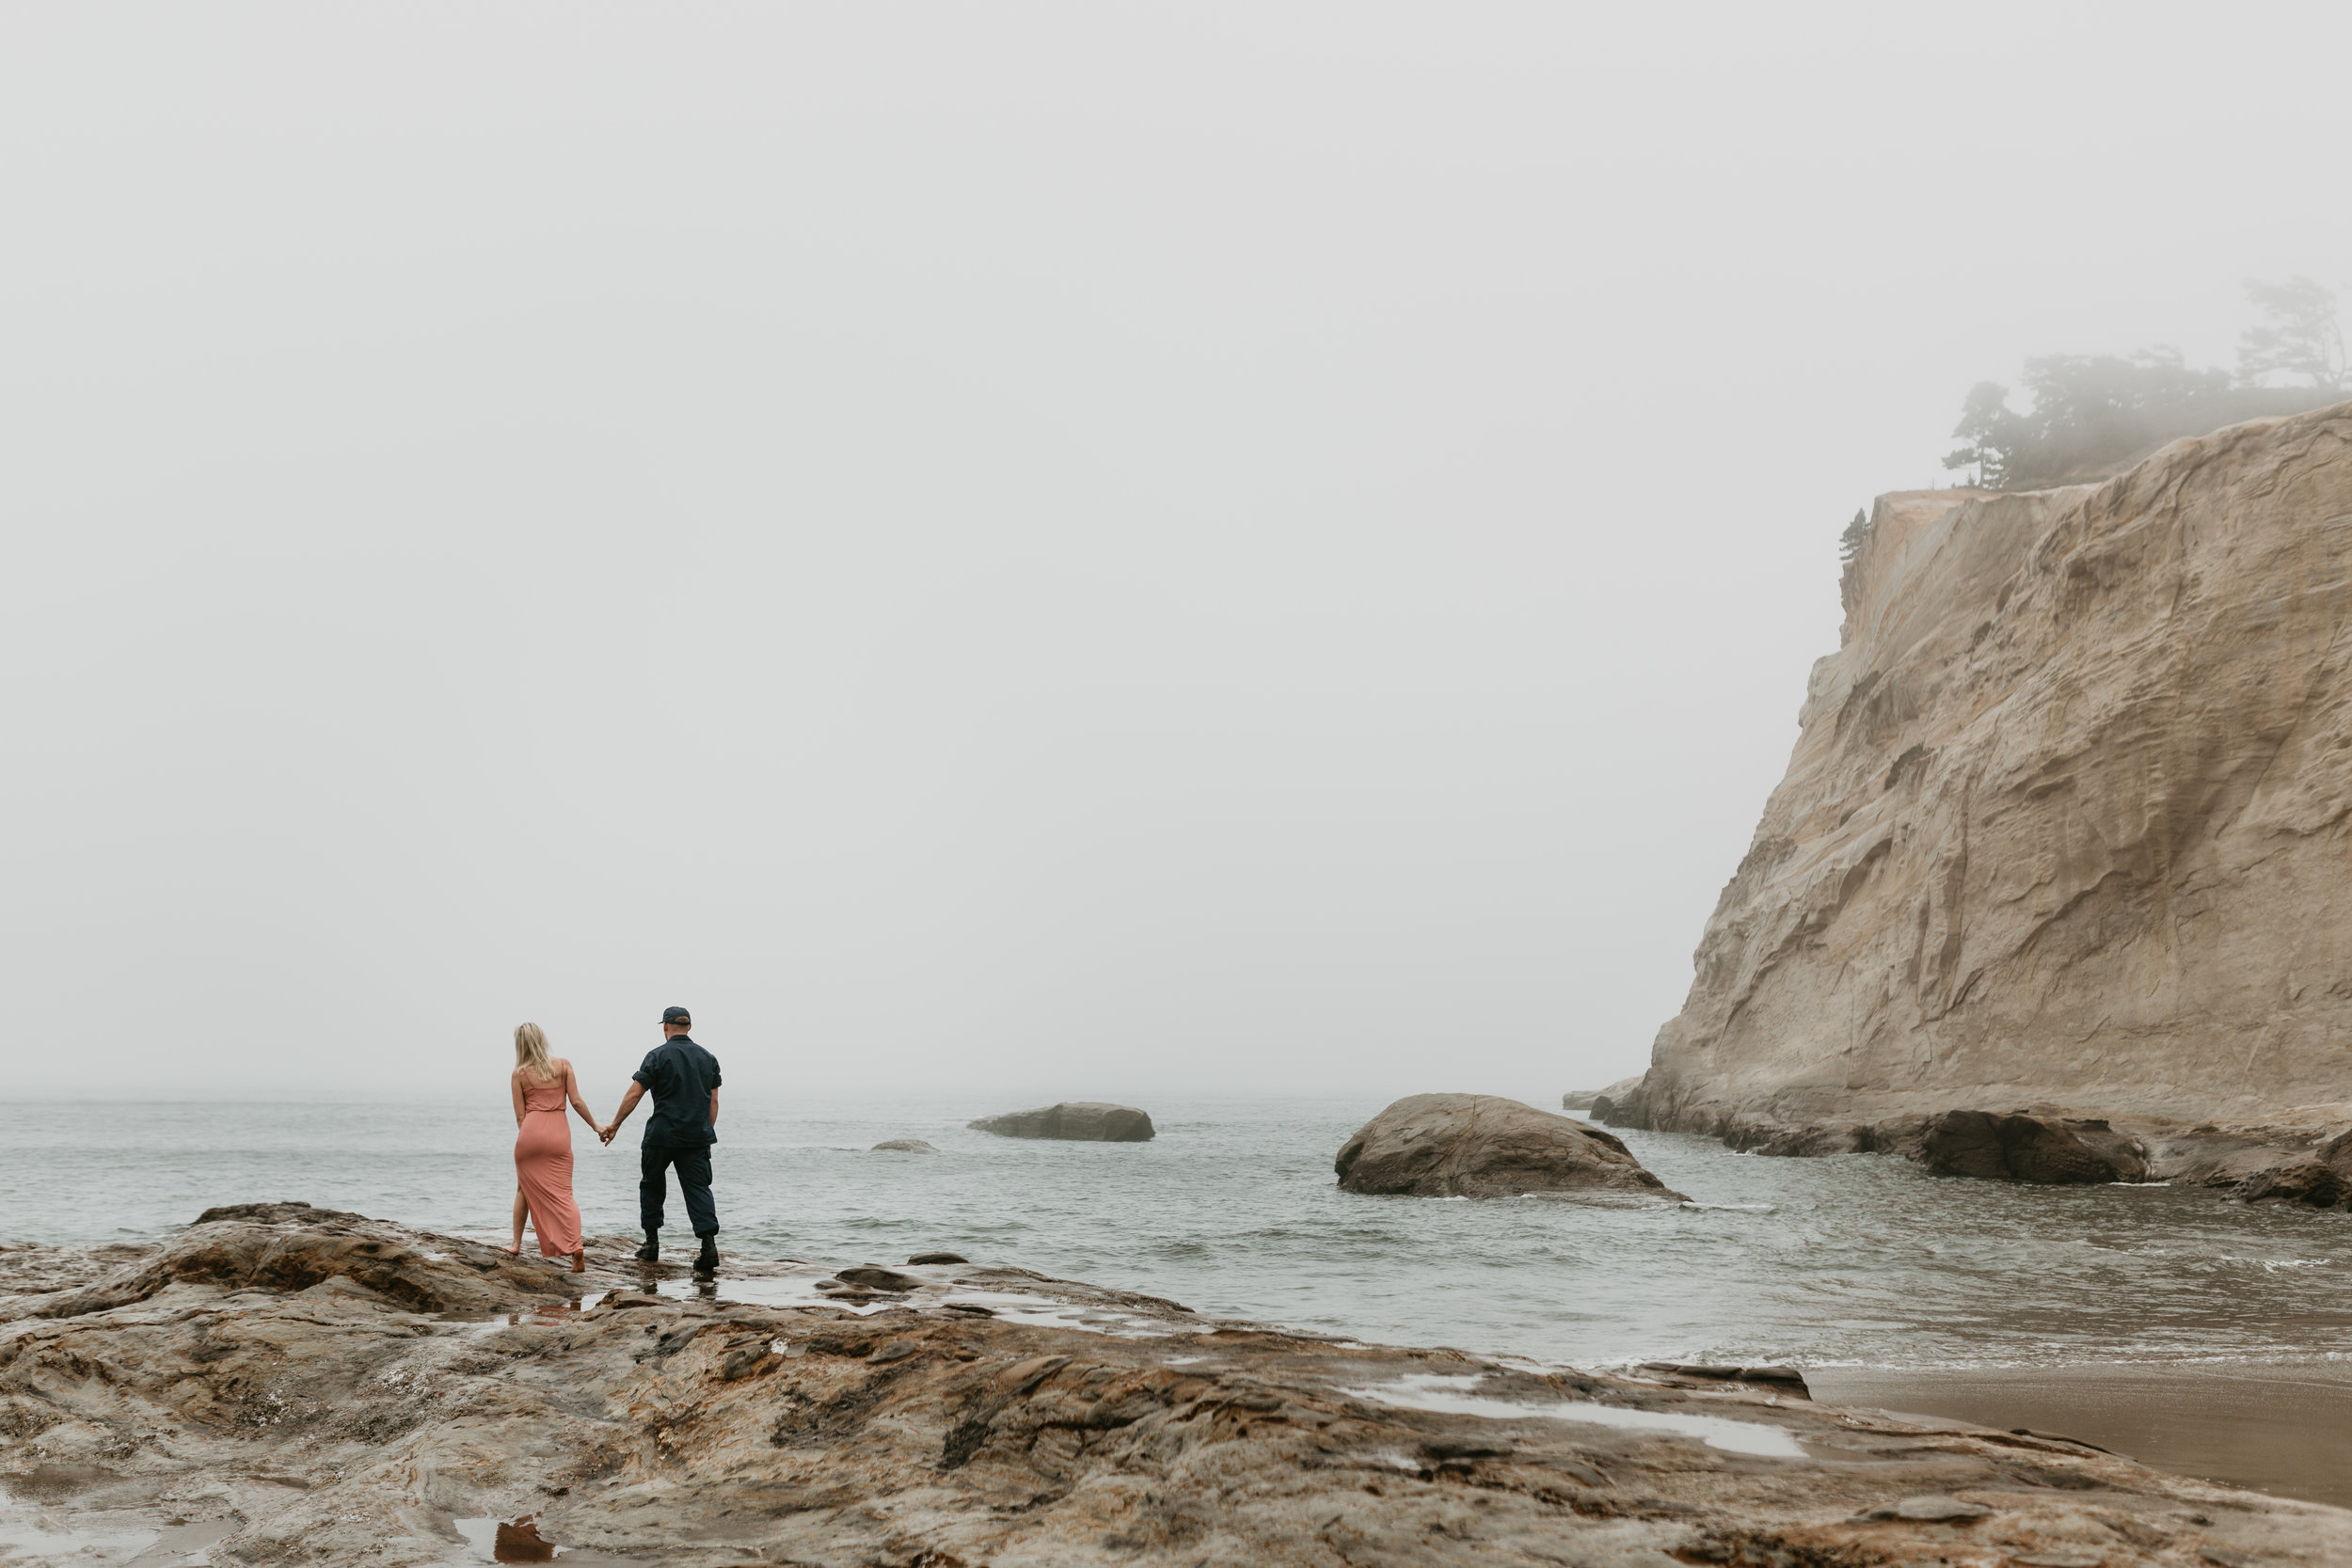 nicole-daacke-photography-adventurous-elopement-traveling-destination-wedding-photographer-national-park-engagement-sessions-6482.jpg